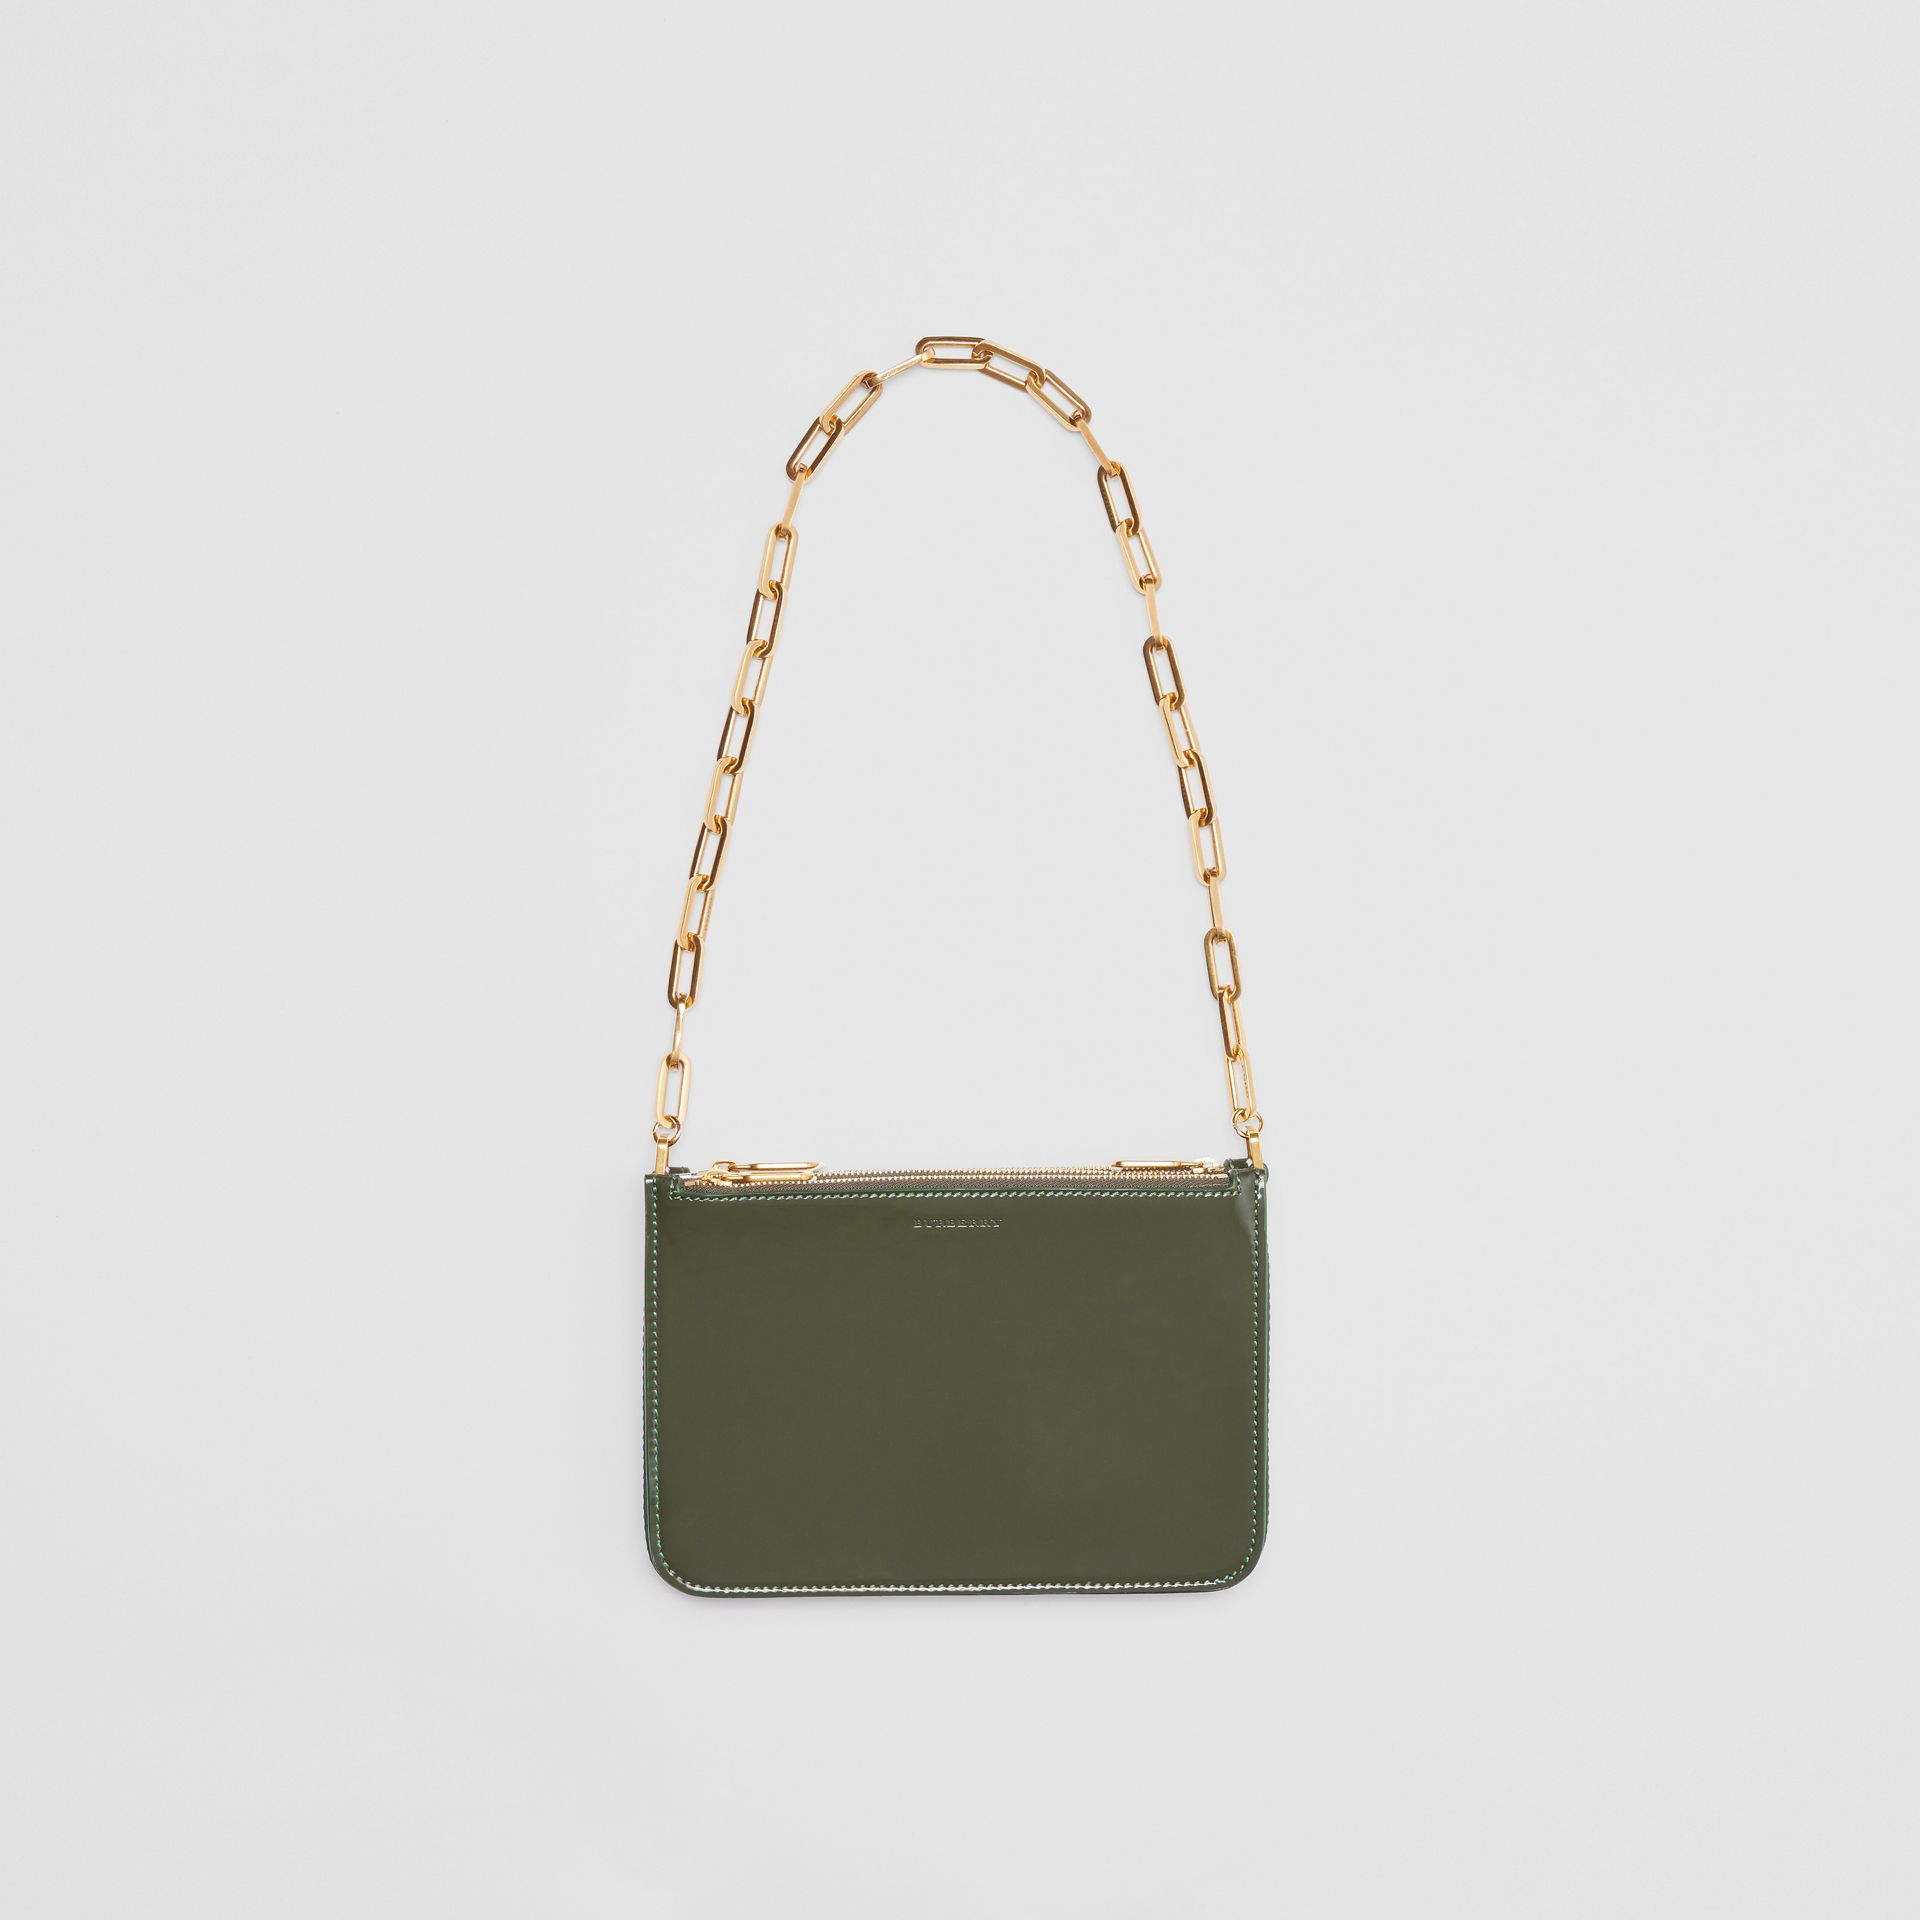 Triple Zip Patent Leather Crossbody Bag in Dark Forest Green - Women | Burberry United States - gallery image 2